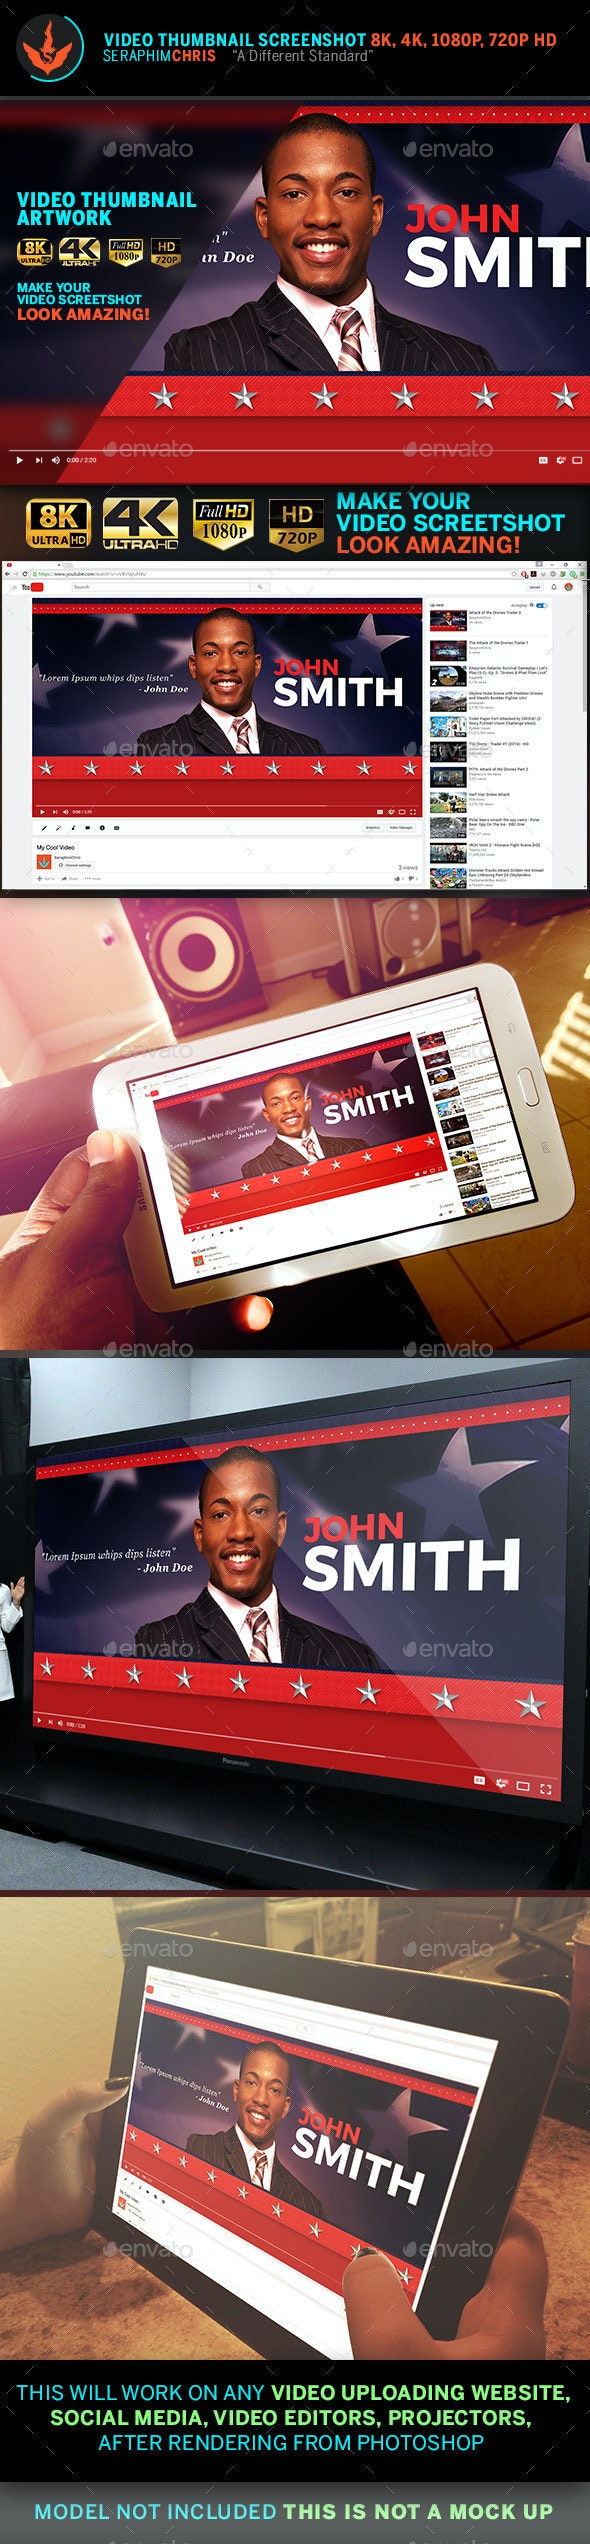 Political YouTube Video Thumbnail Screenshot Template 4 - YouTube Social Media